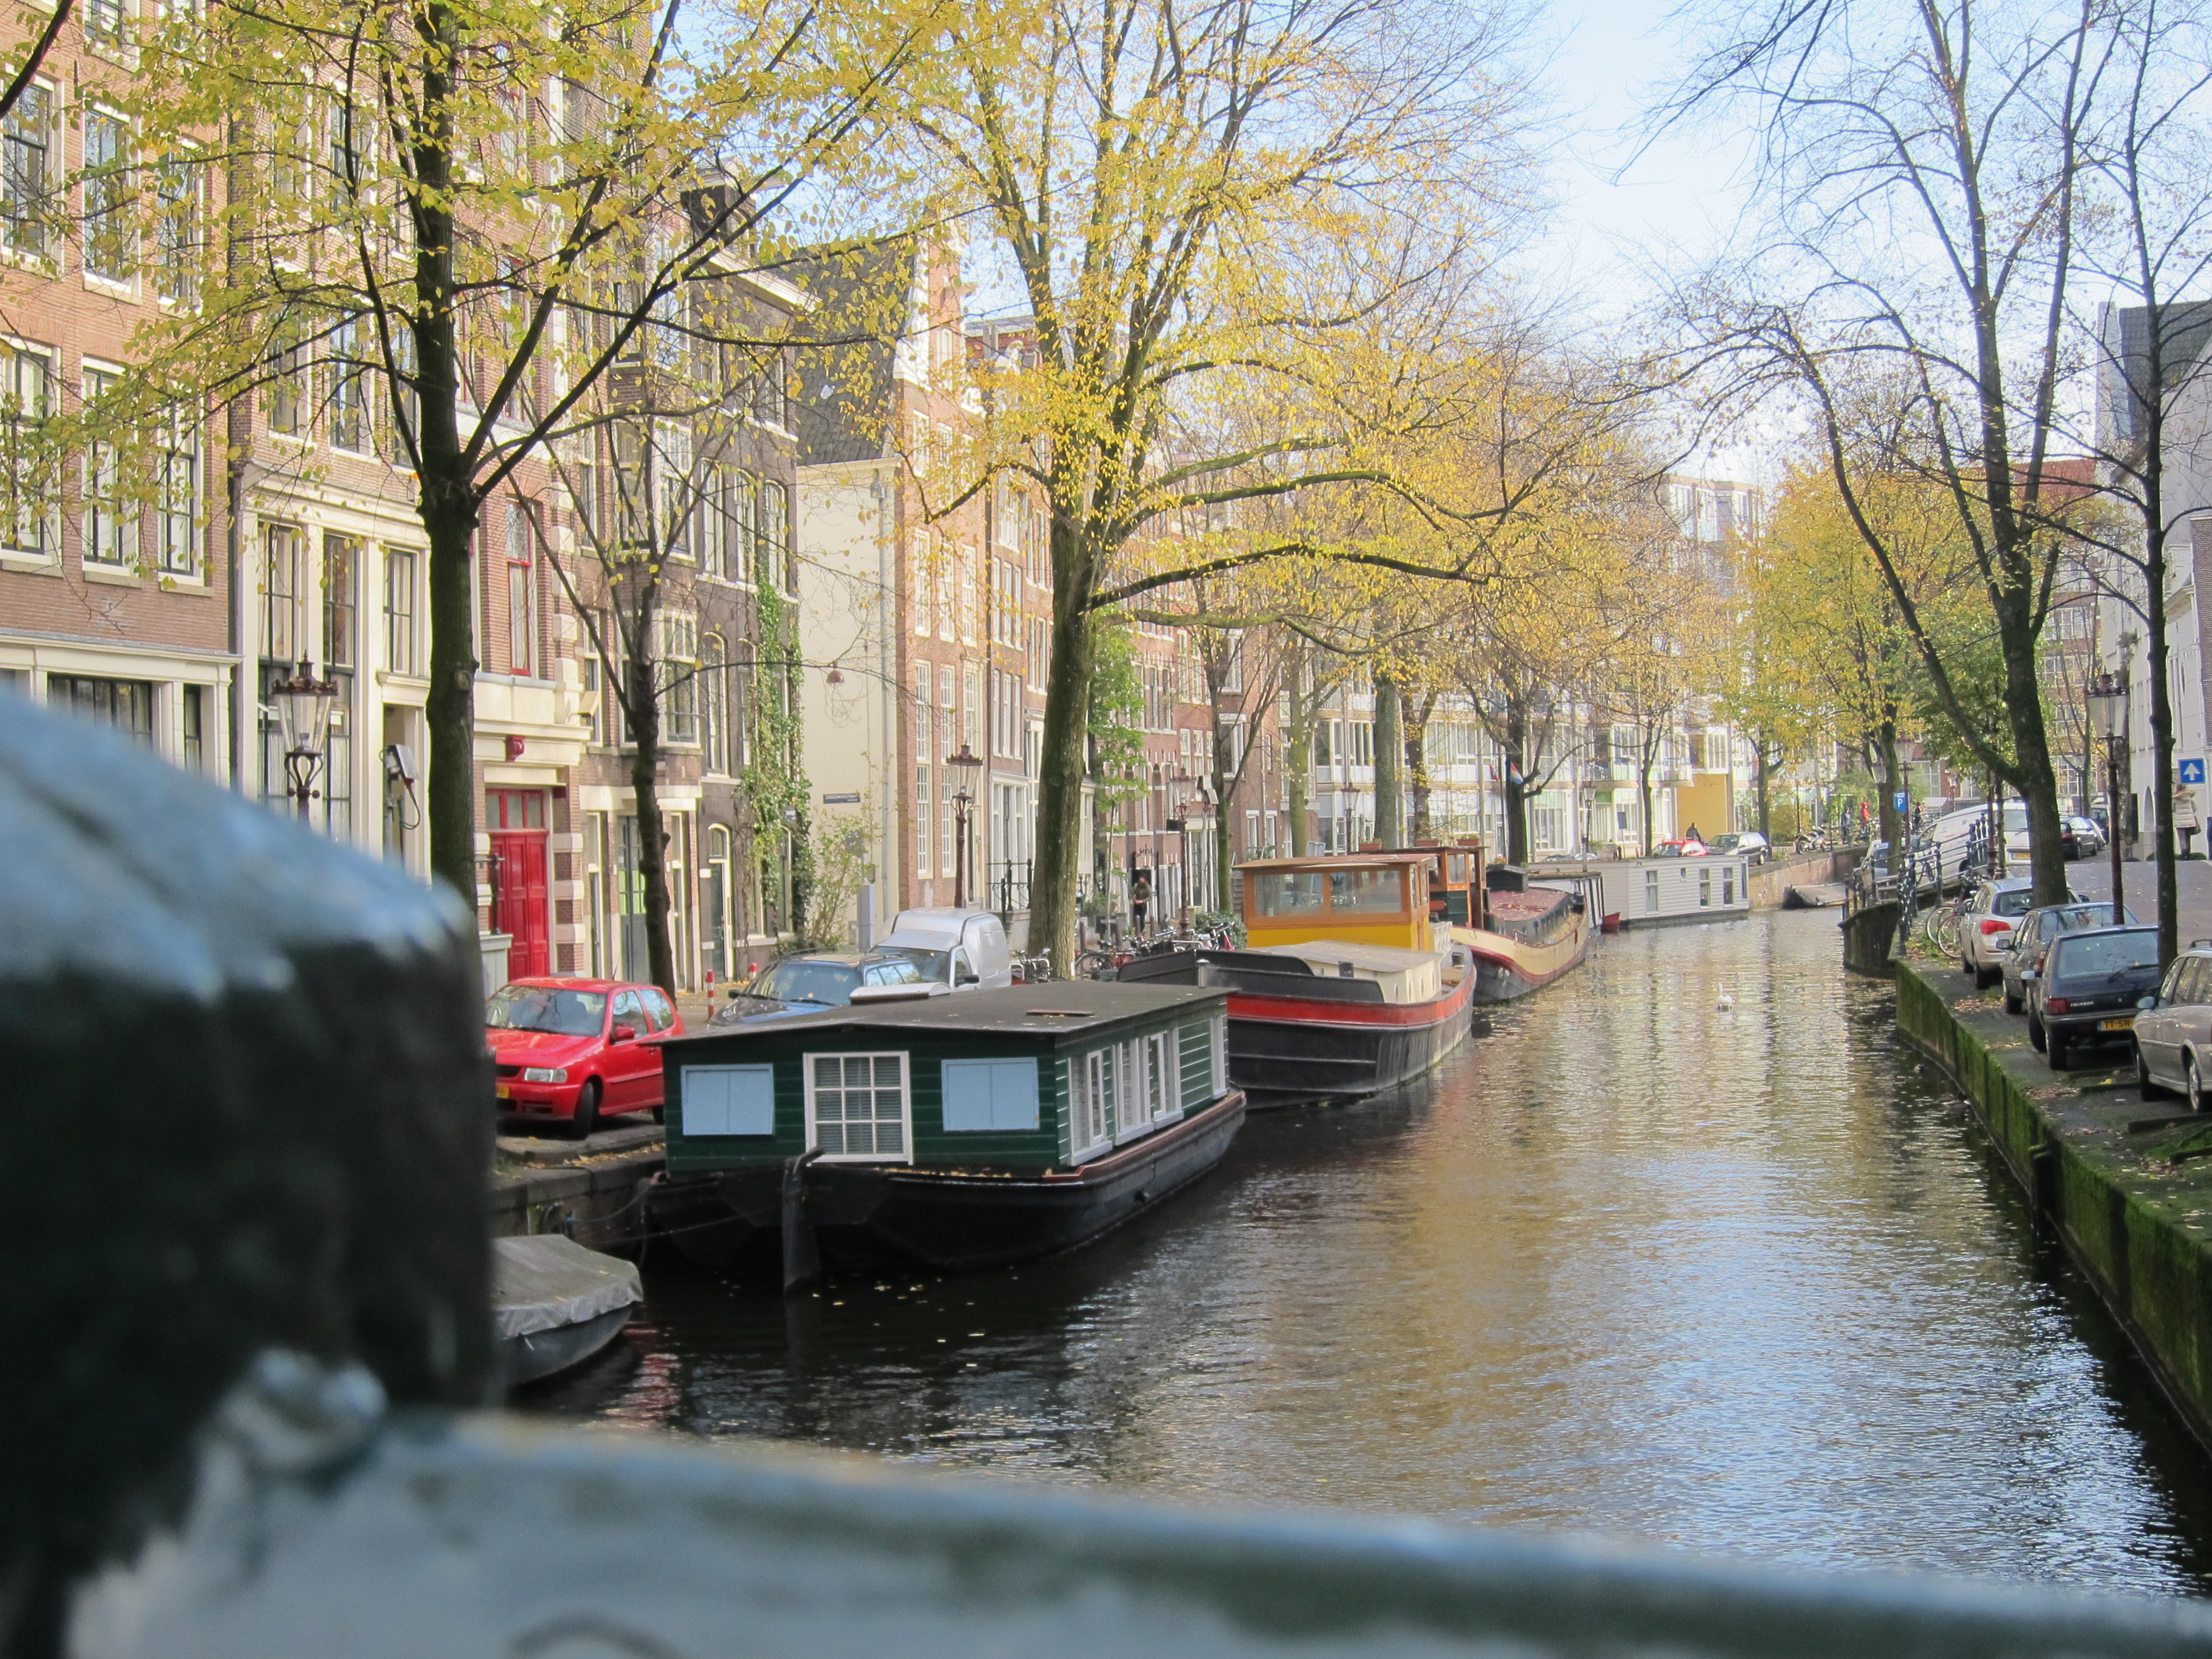 A quintessential canal in Amsterdam